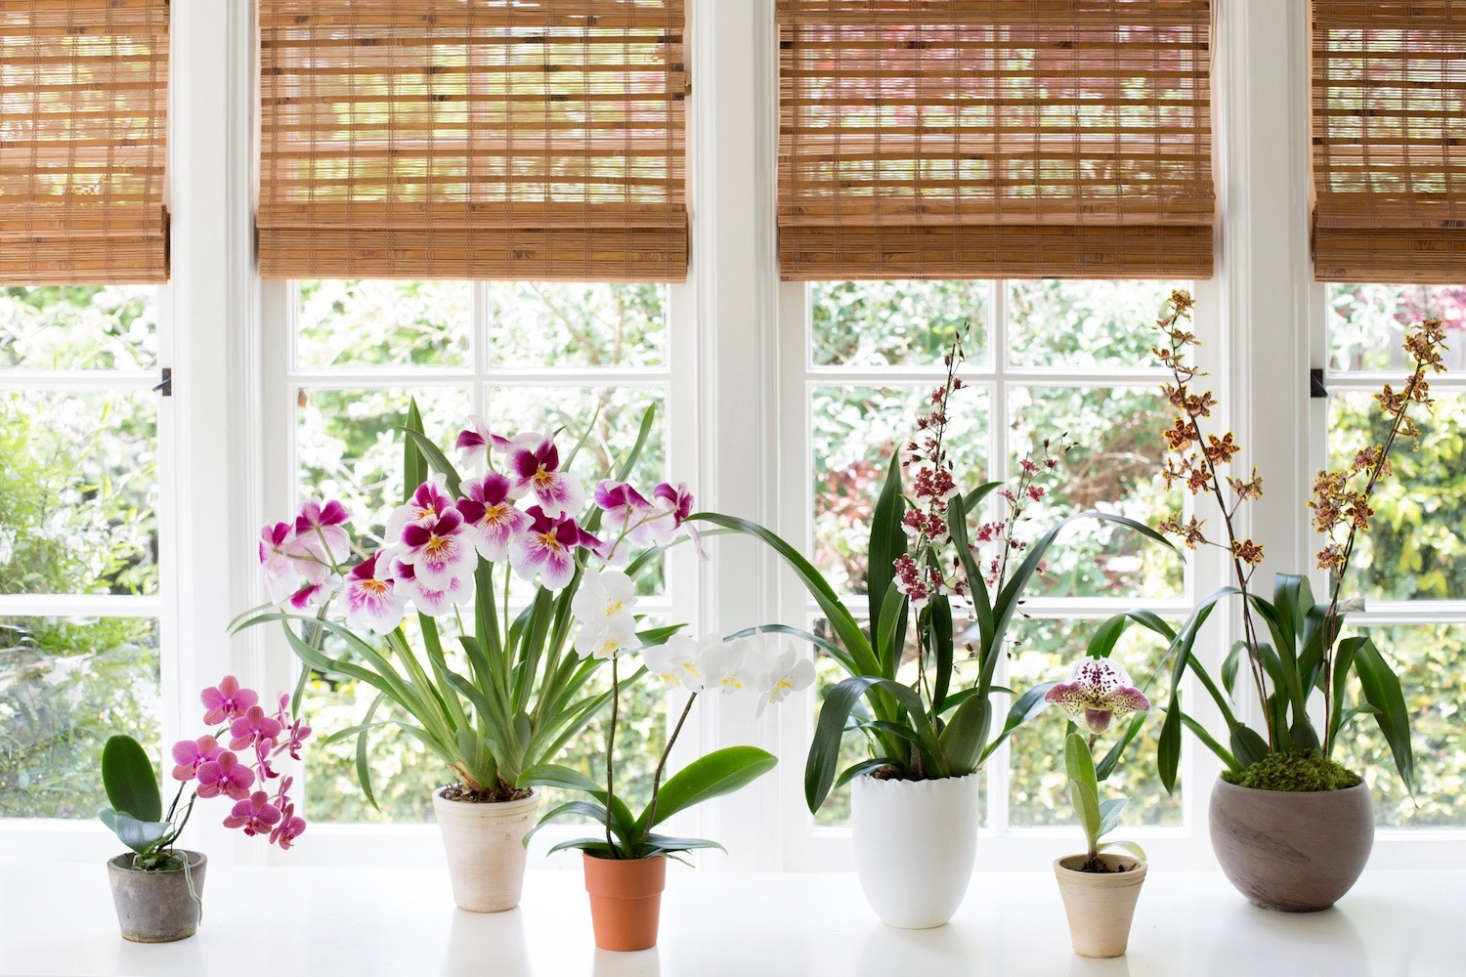 Start an orchid collection with easy-to-grow indoor varieties. See more at Best Indoor Plants: 6 Flowering Orchids to Grow. Photograph by Mimi Giboin.